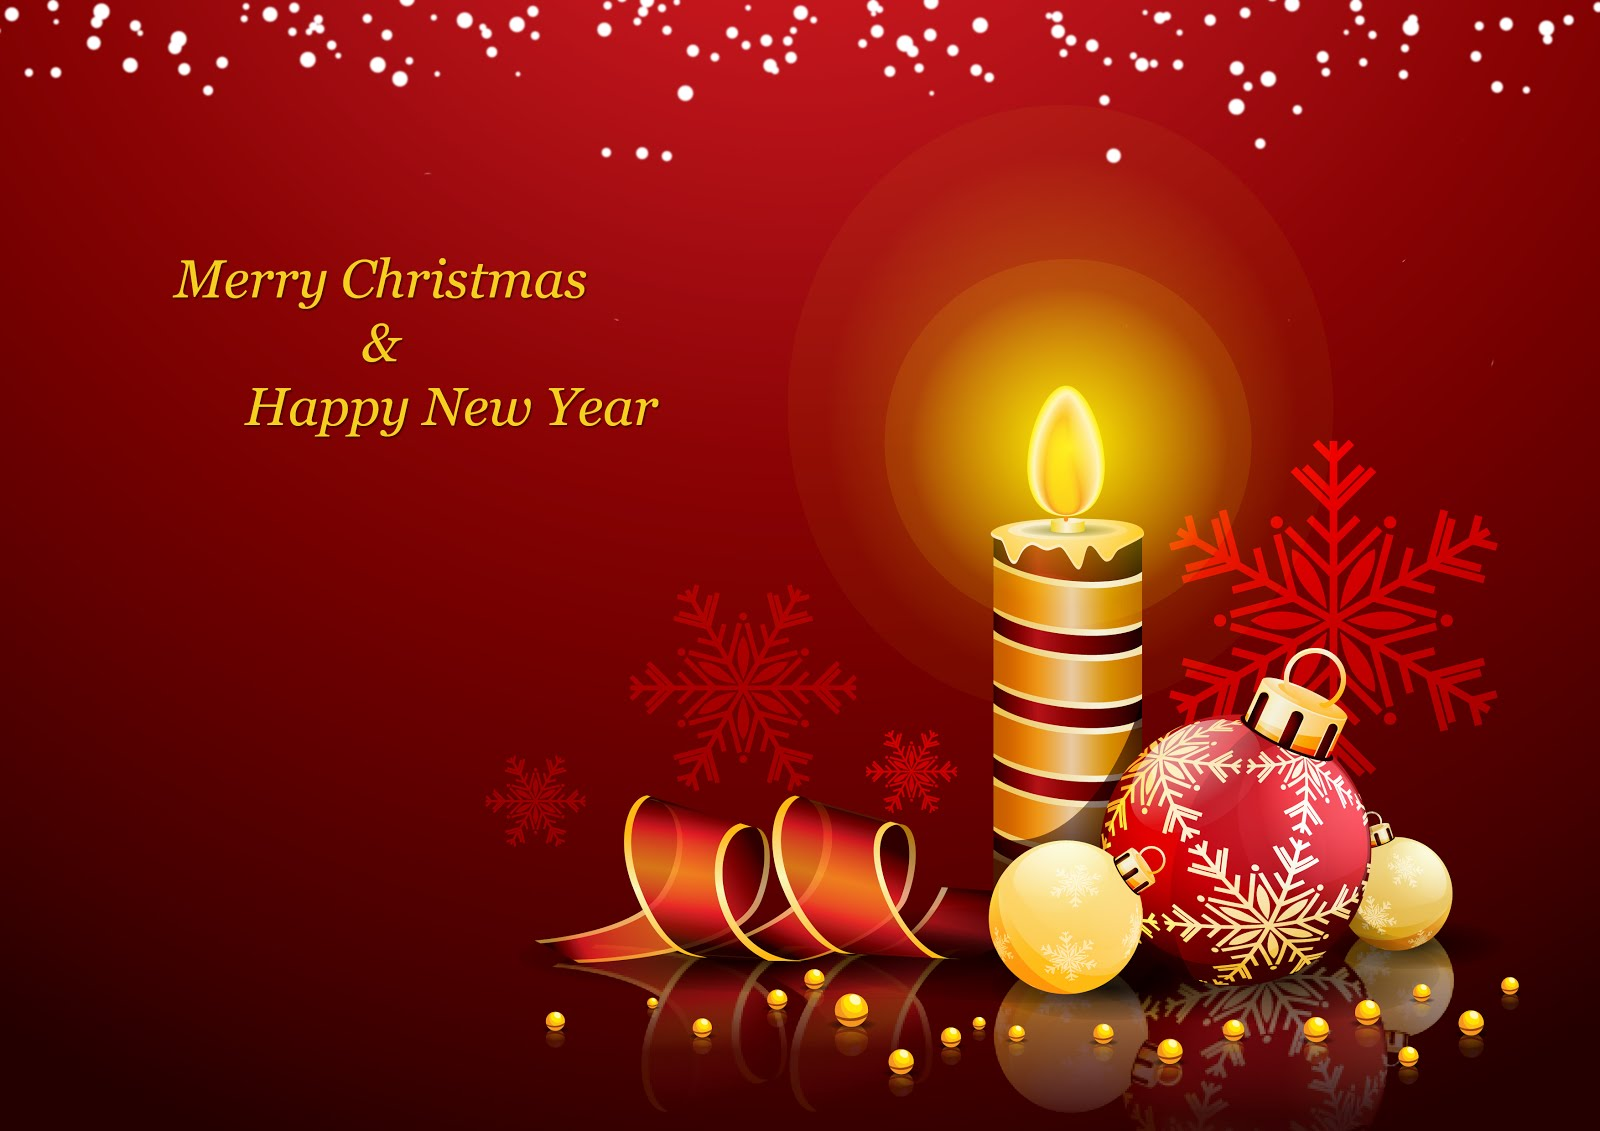 Merry Christmas 2013 - Lets Celebrate the Biggest Christian Festival